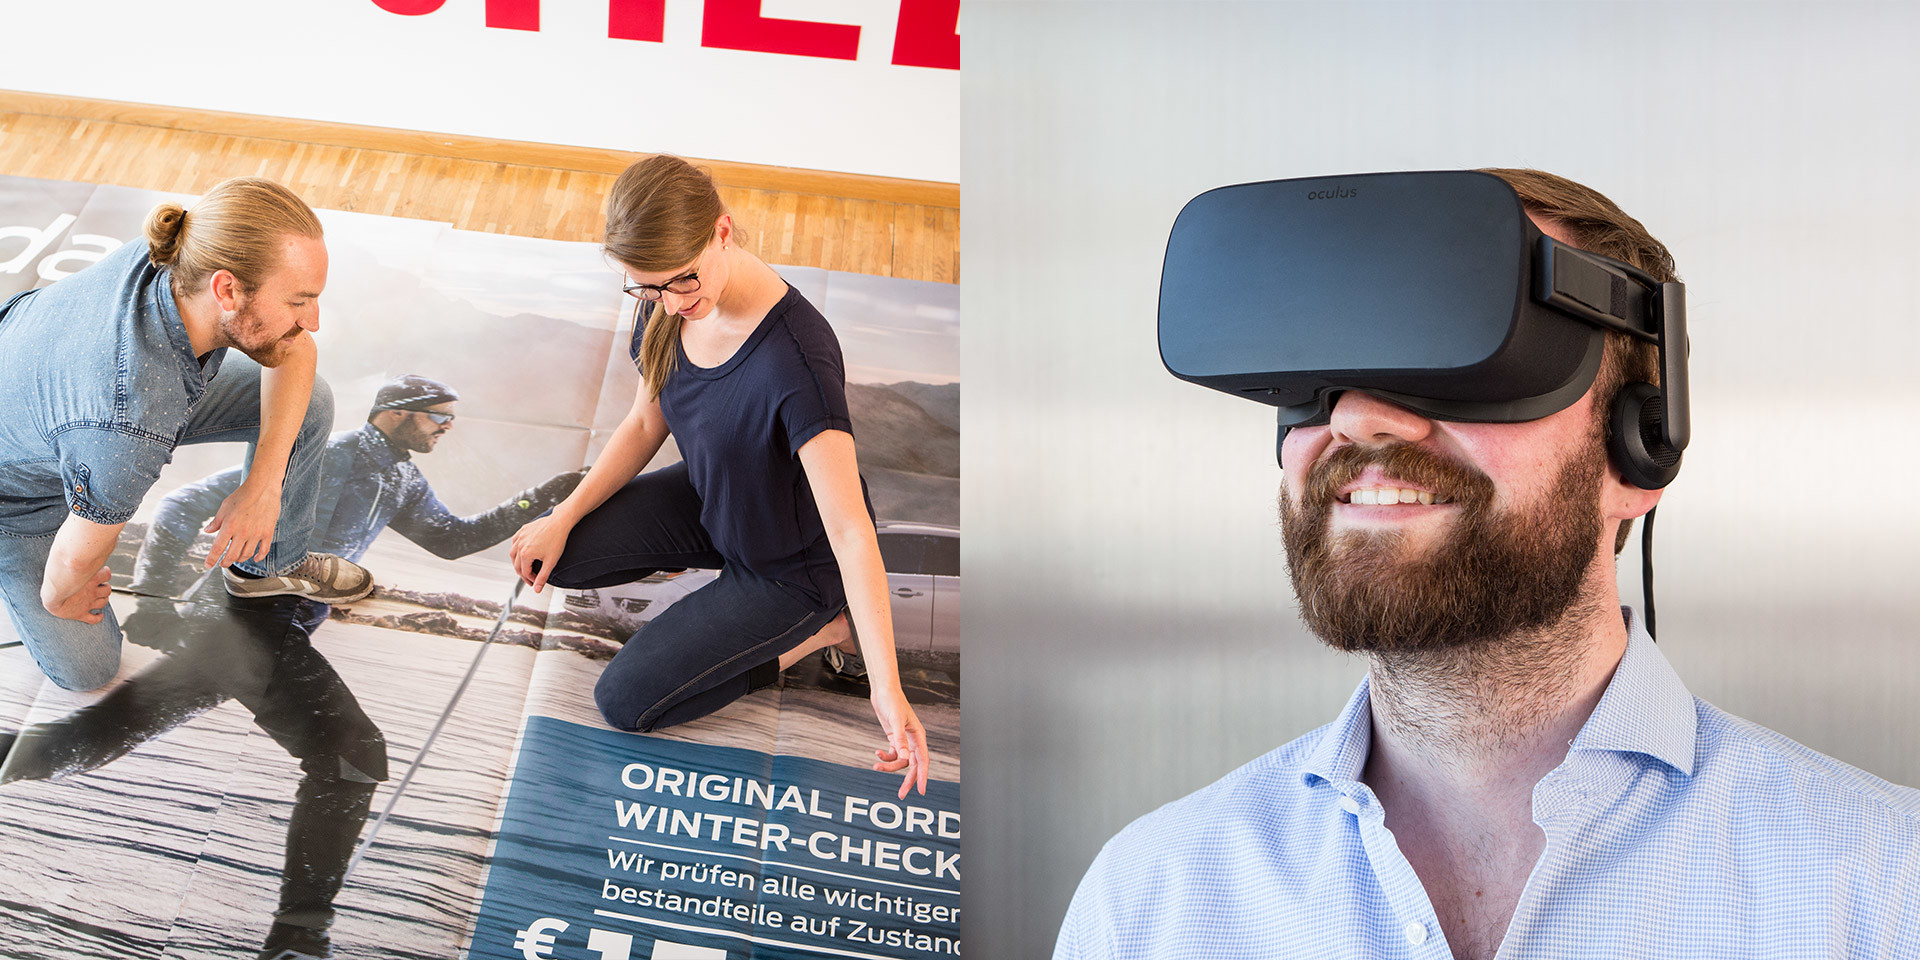 Virtual reality meets poster advertising